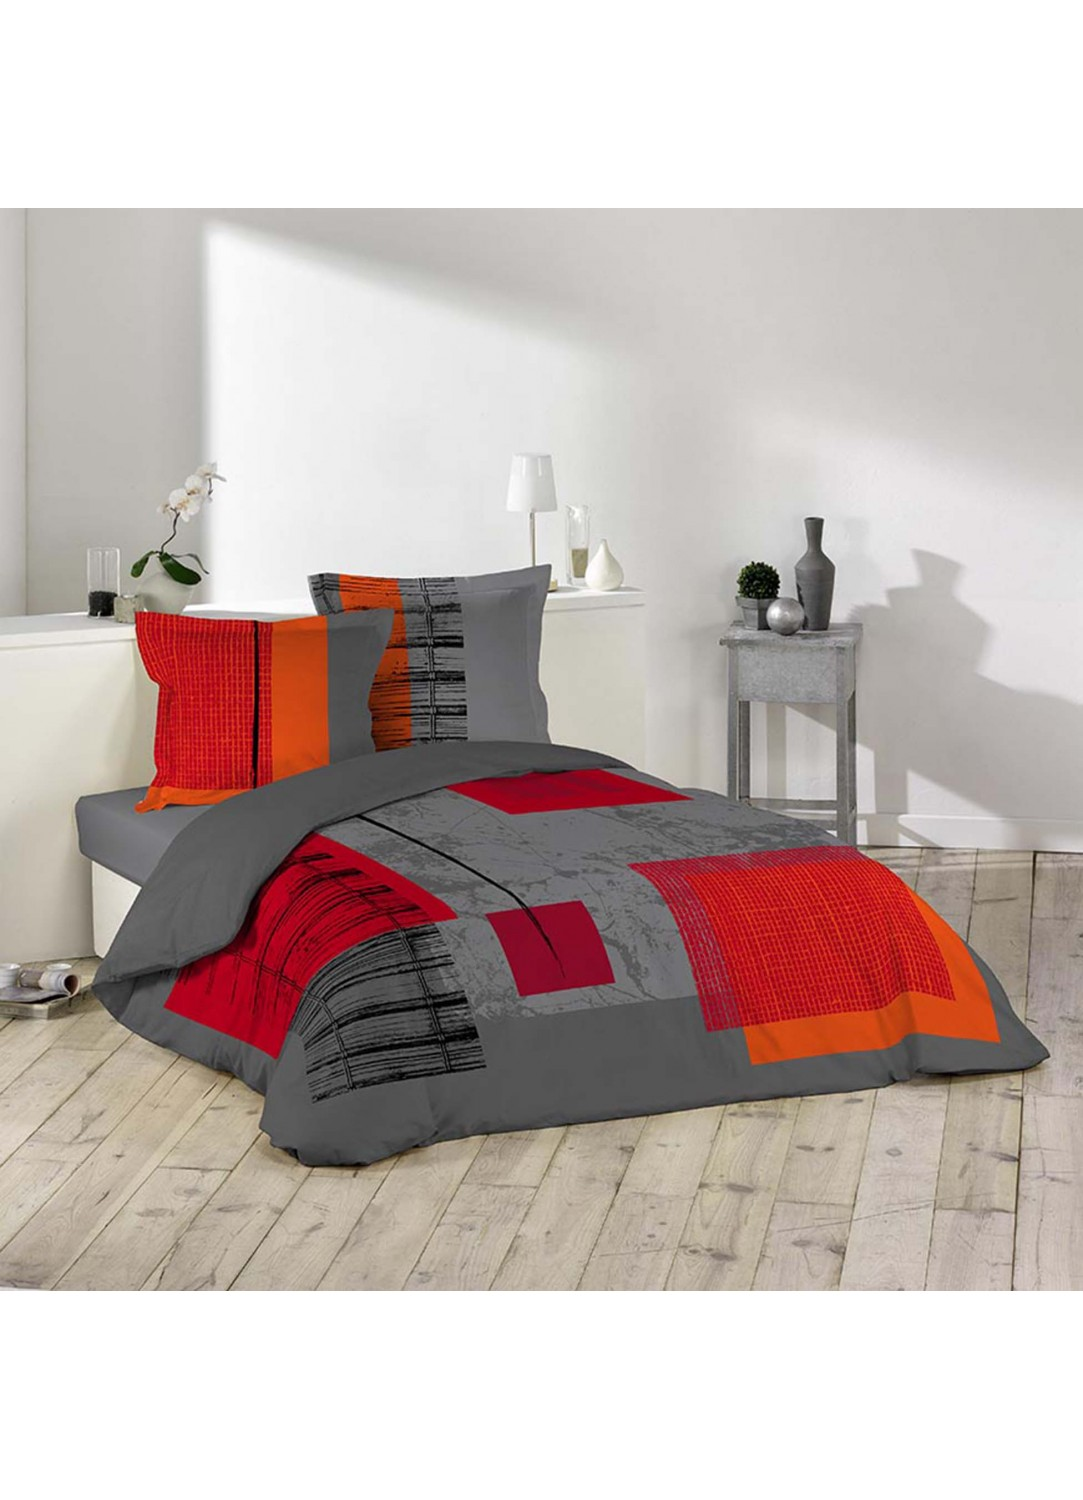 parure de lit 2 personnes quadro gris rouge homemaison vente en ligne parures de lit. Black Bedroom Furniture Sets. Home Design Ideas